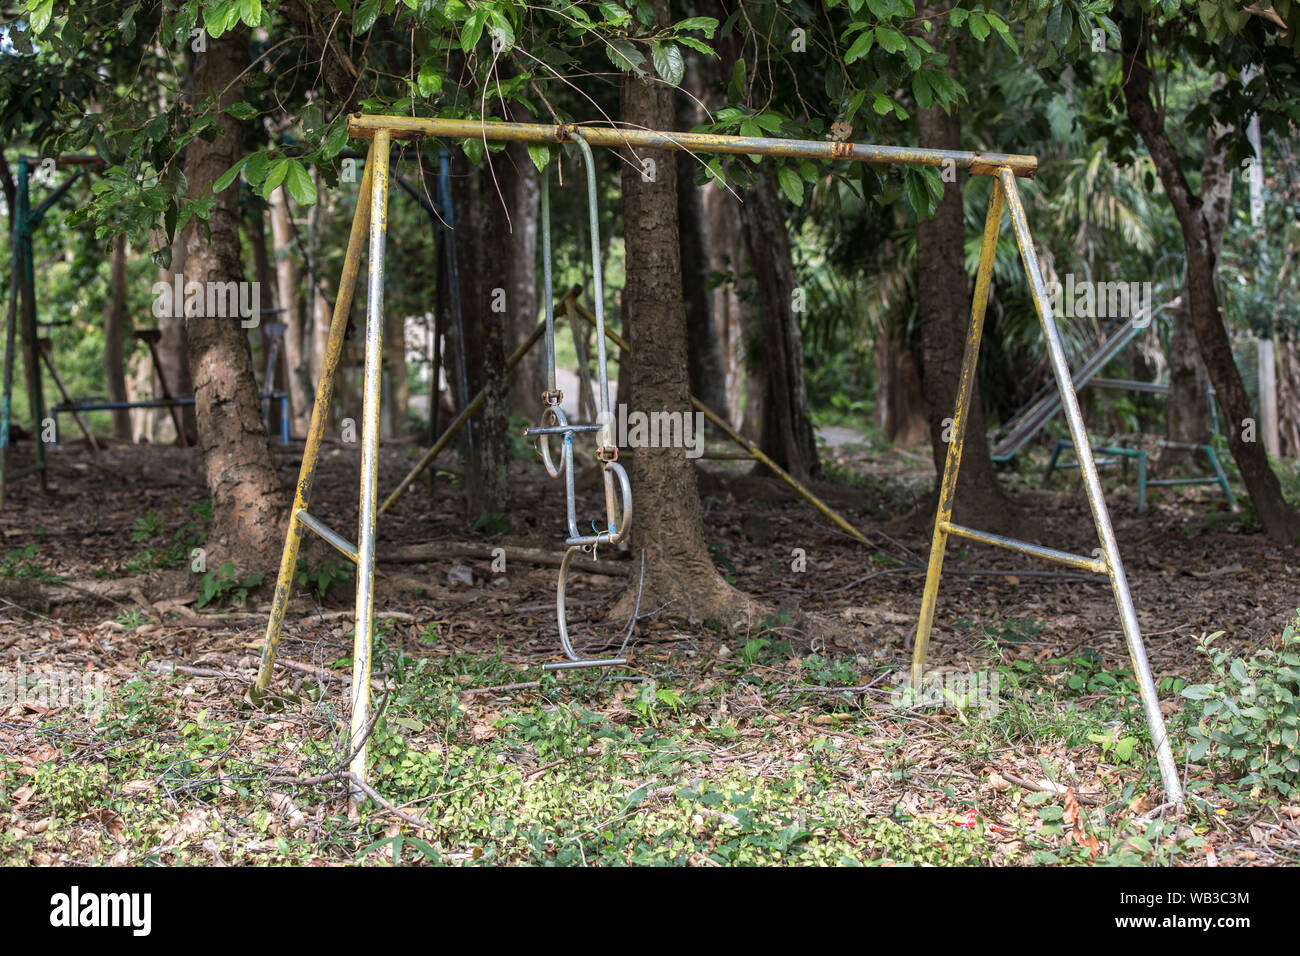 Themed Playground High Resolution Stock Photography And Images Alamy